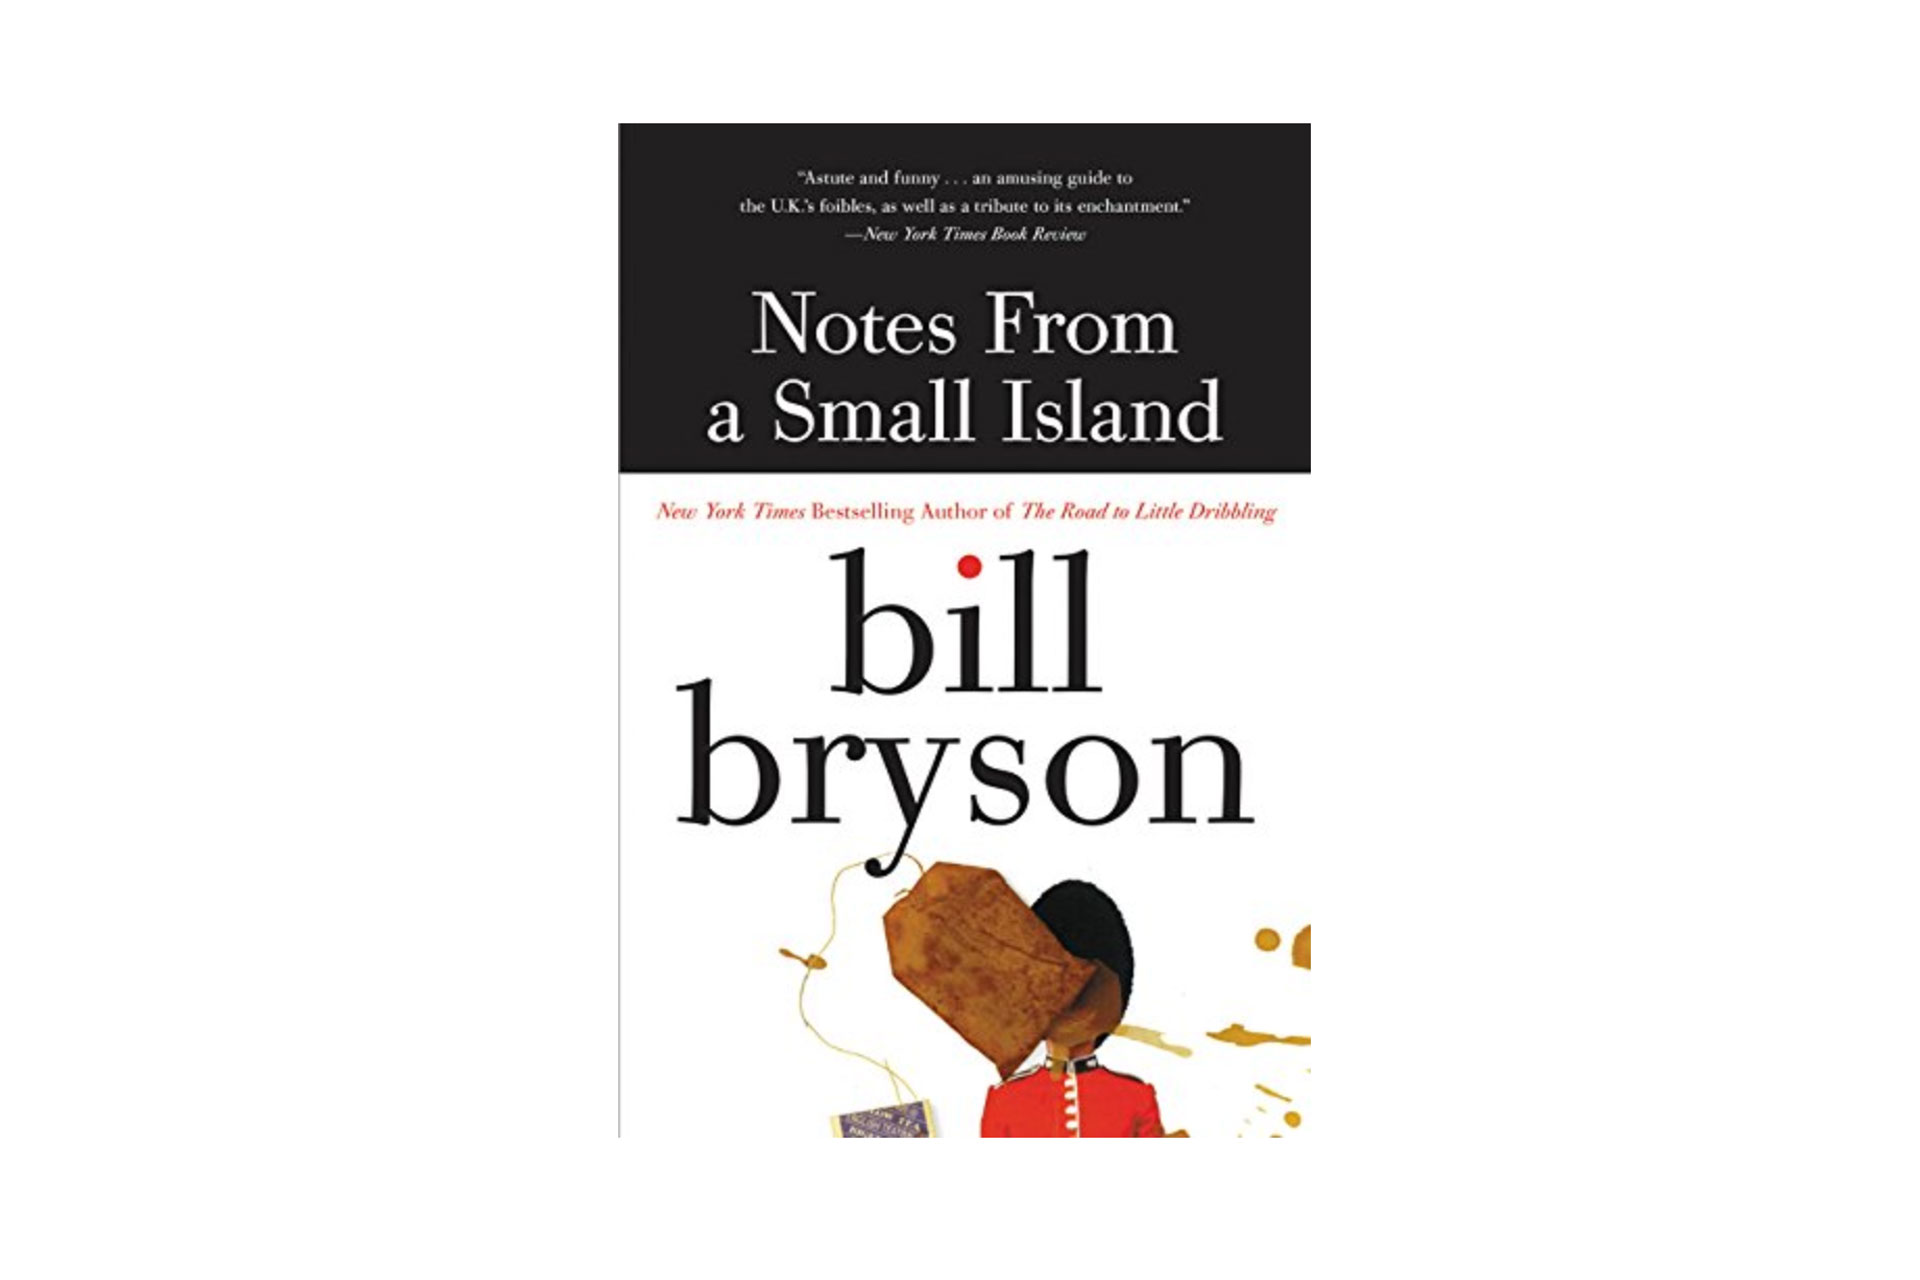 Notes From a Small Island Book; Courtesy of Amazon